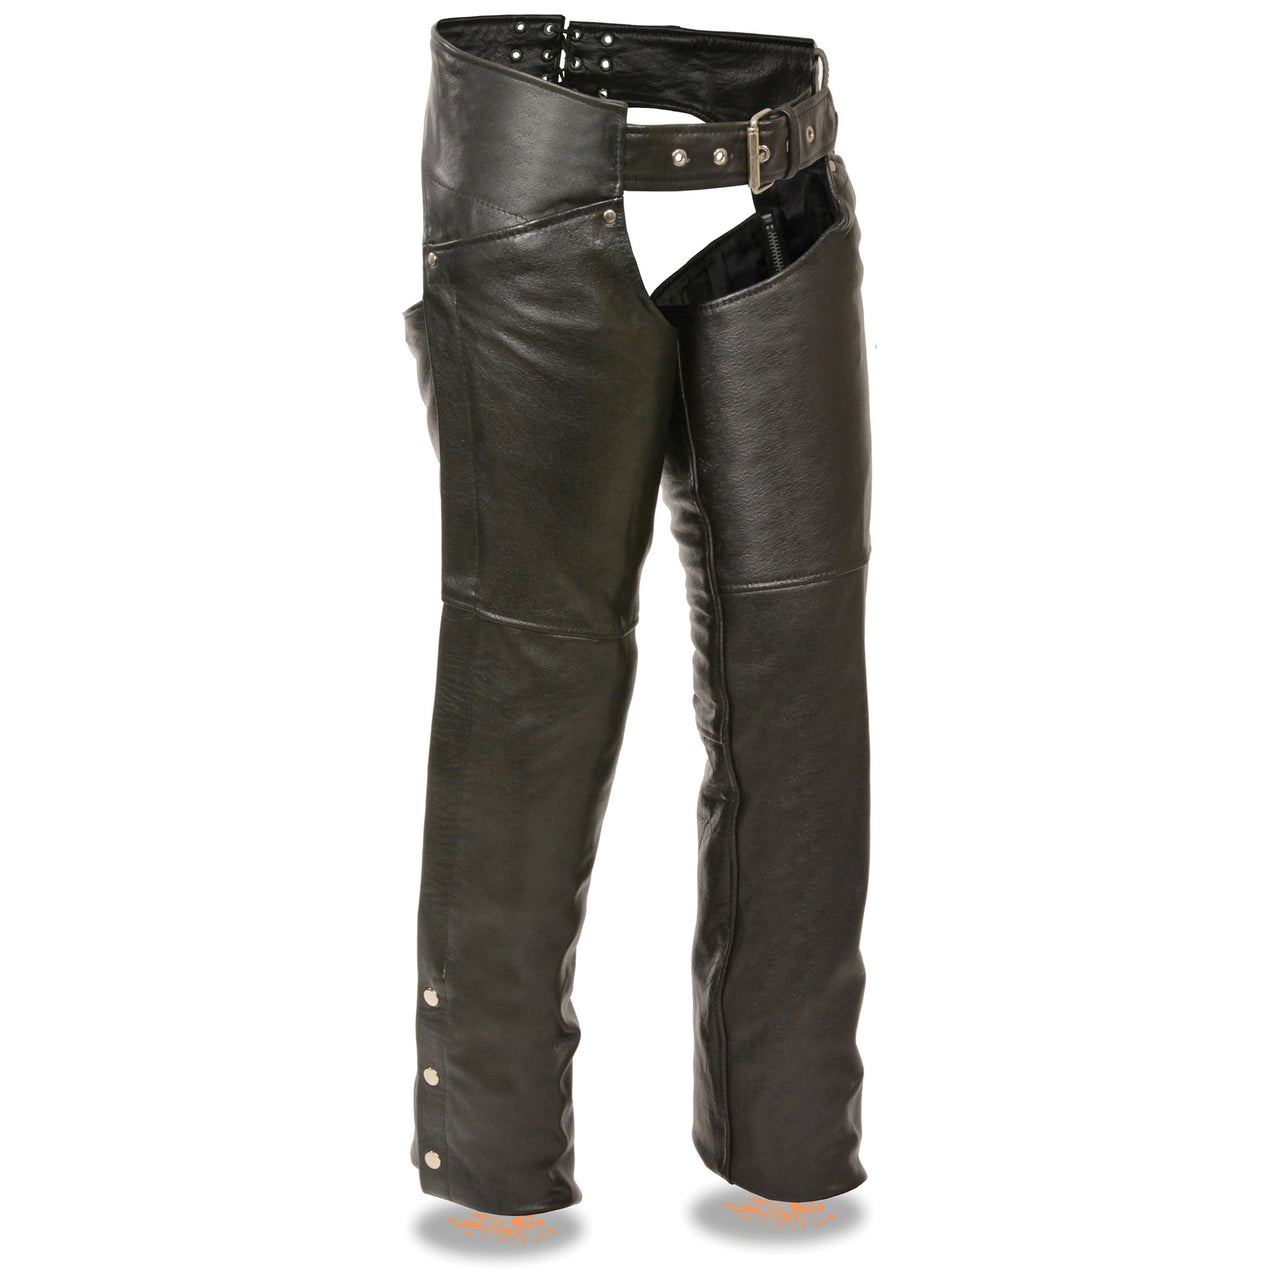 Men's Classic Hip Pocket Chap - HighwayLeather